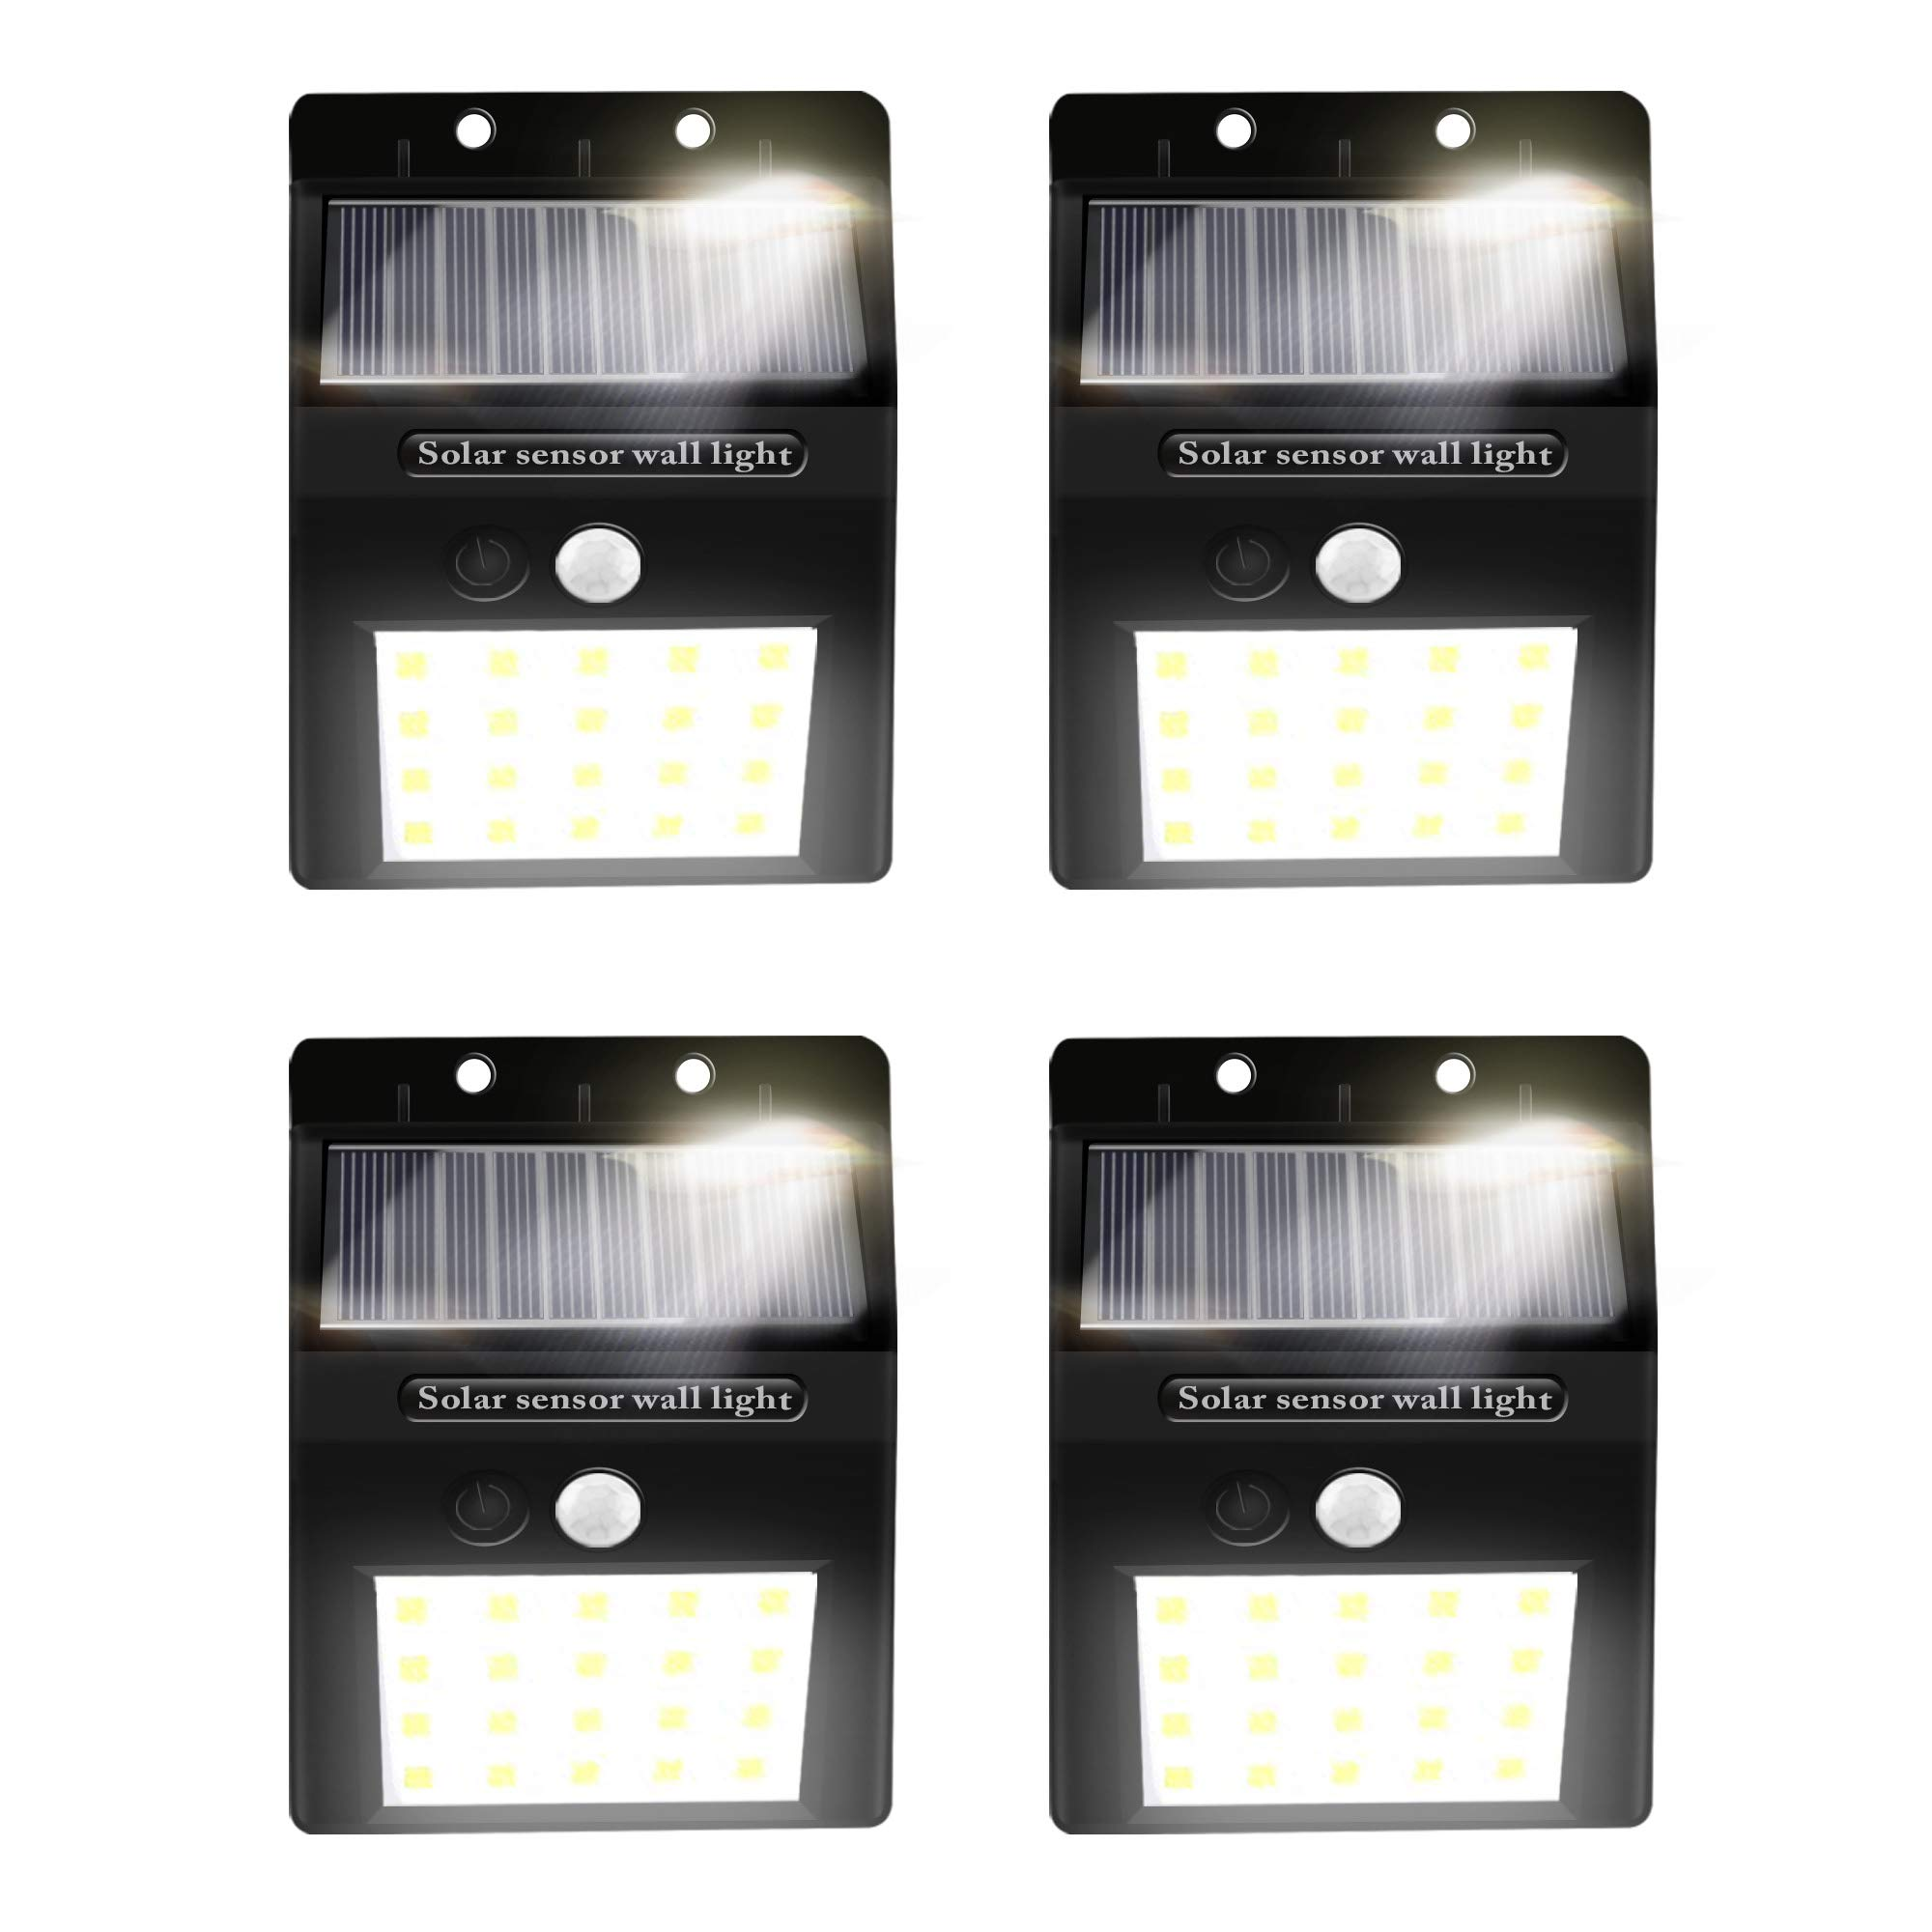 Alture Solar Lights Outdoor 20 LED Solar Motion Sensor Lights Waterproof Security Solar Wall Light for Outdoor Wall Graden Yard Garage Driveway Porch Fence - 4 Pack